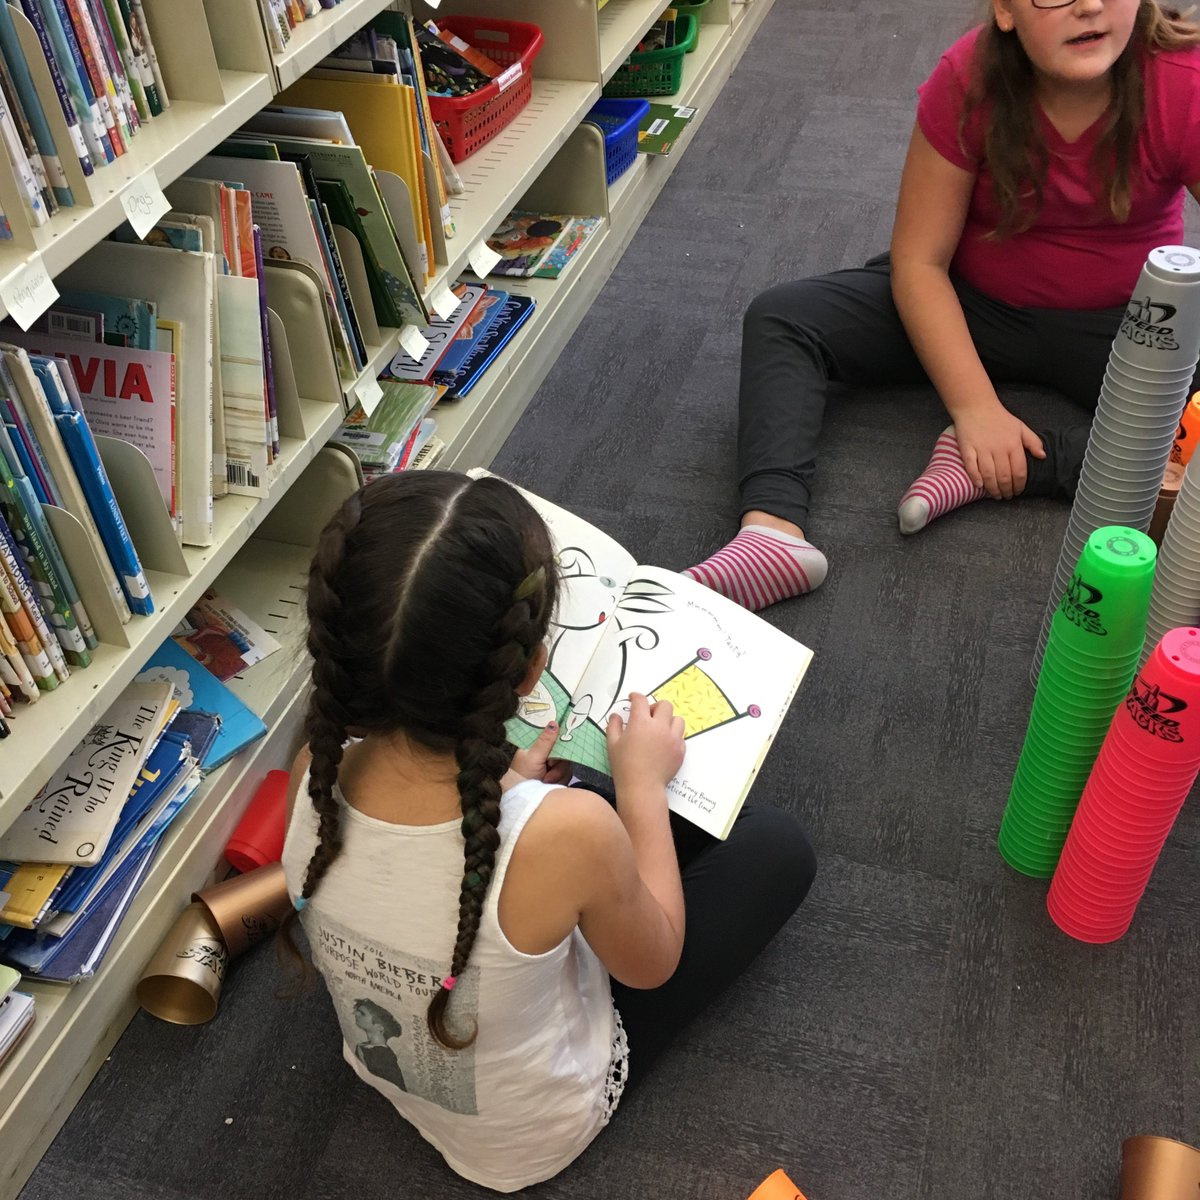 So true - the best libraries are both Makerspaces AND filled with books.  http://www. teenlibrariantoolbox.com/2017/05/maker- spaces-and-books-its-not-either-or-its-both-and/ &nbsp; …  #lskysd #tlchat @KCSlibrary<br>http://pic.twitter.com/FBqNcAvpM1